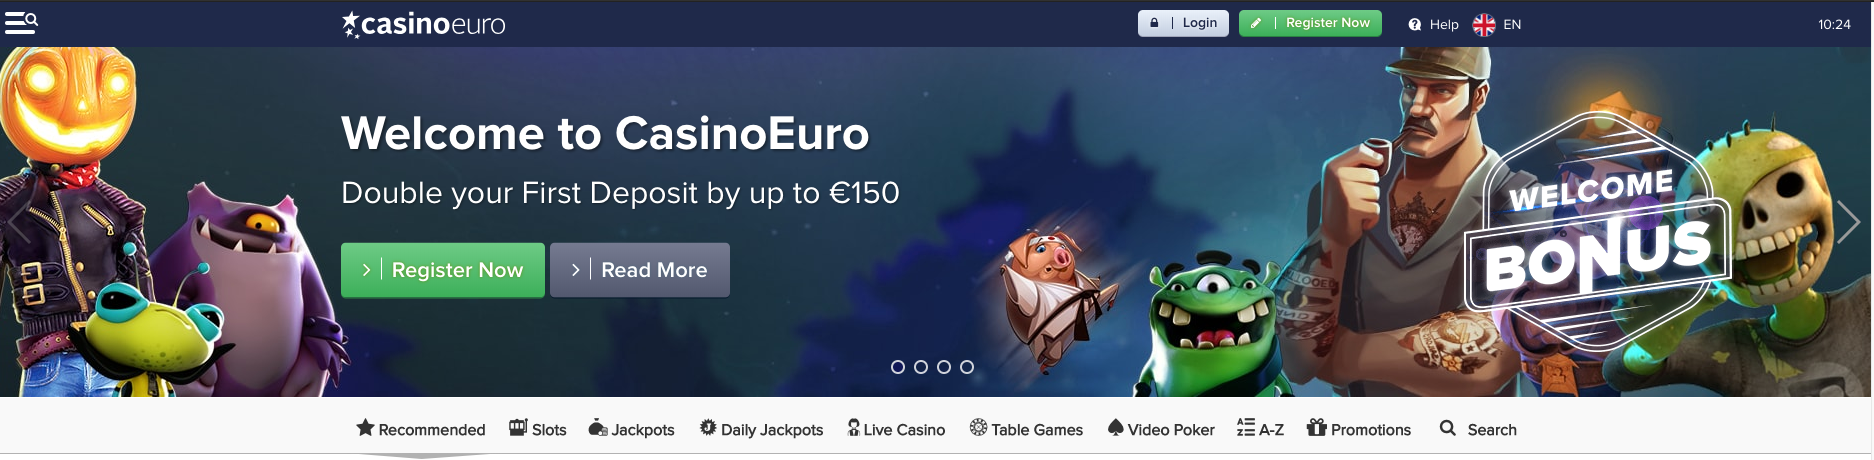 Weekend surprise, an example casino Euro casino offers